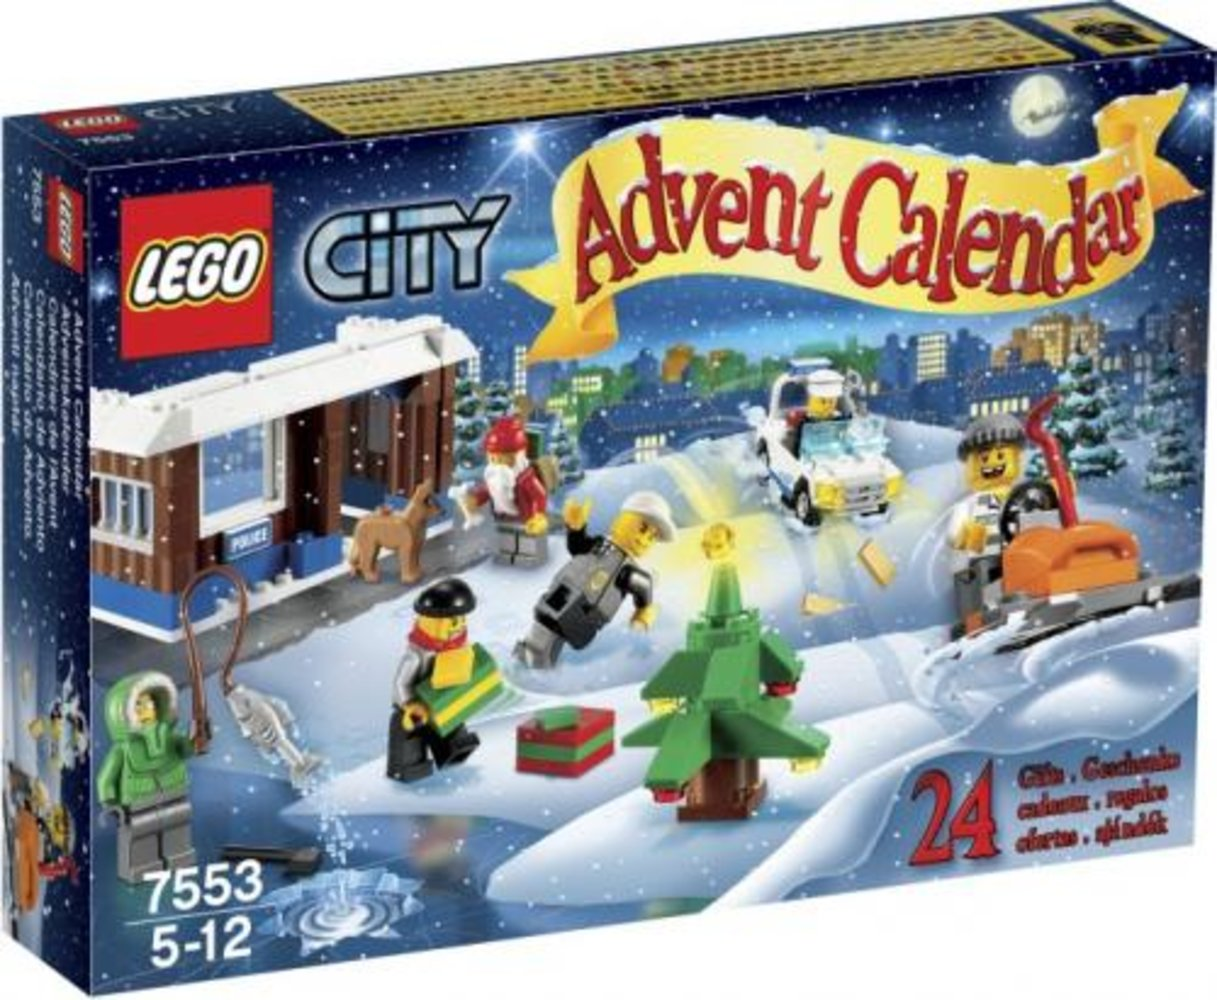 City Advent Calendar 2011